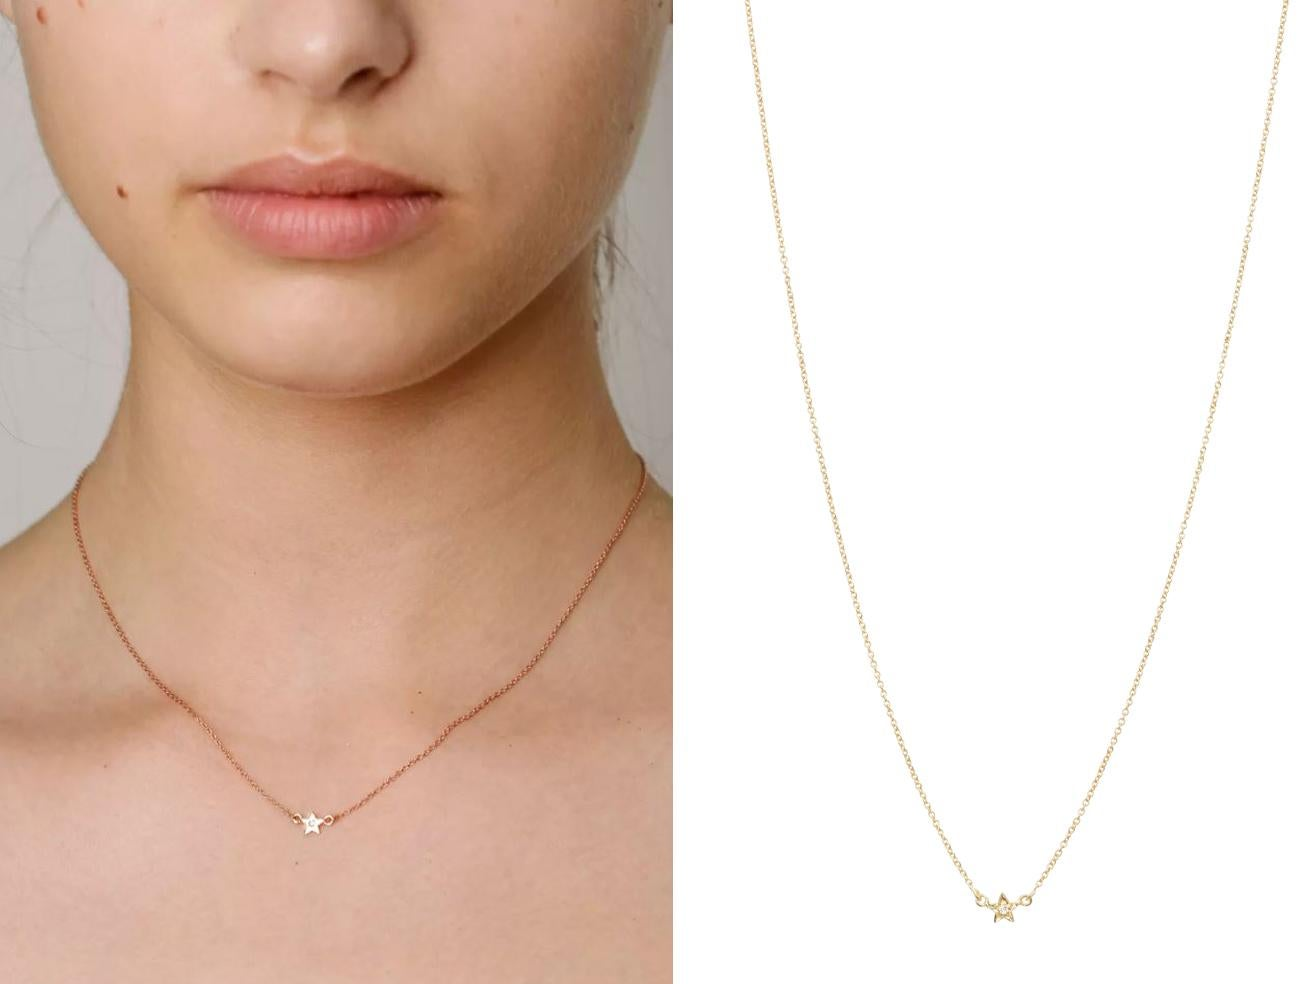 af7ca619f7ce1 Tada   Toy Gold vermeil and diamond Little Star necklace  £90